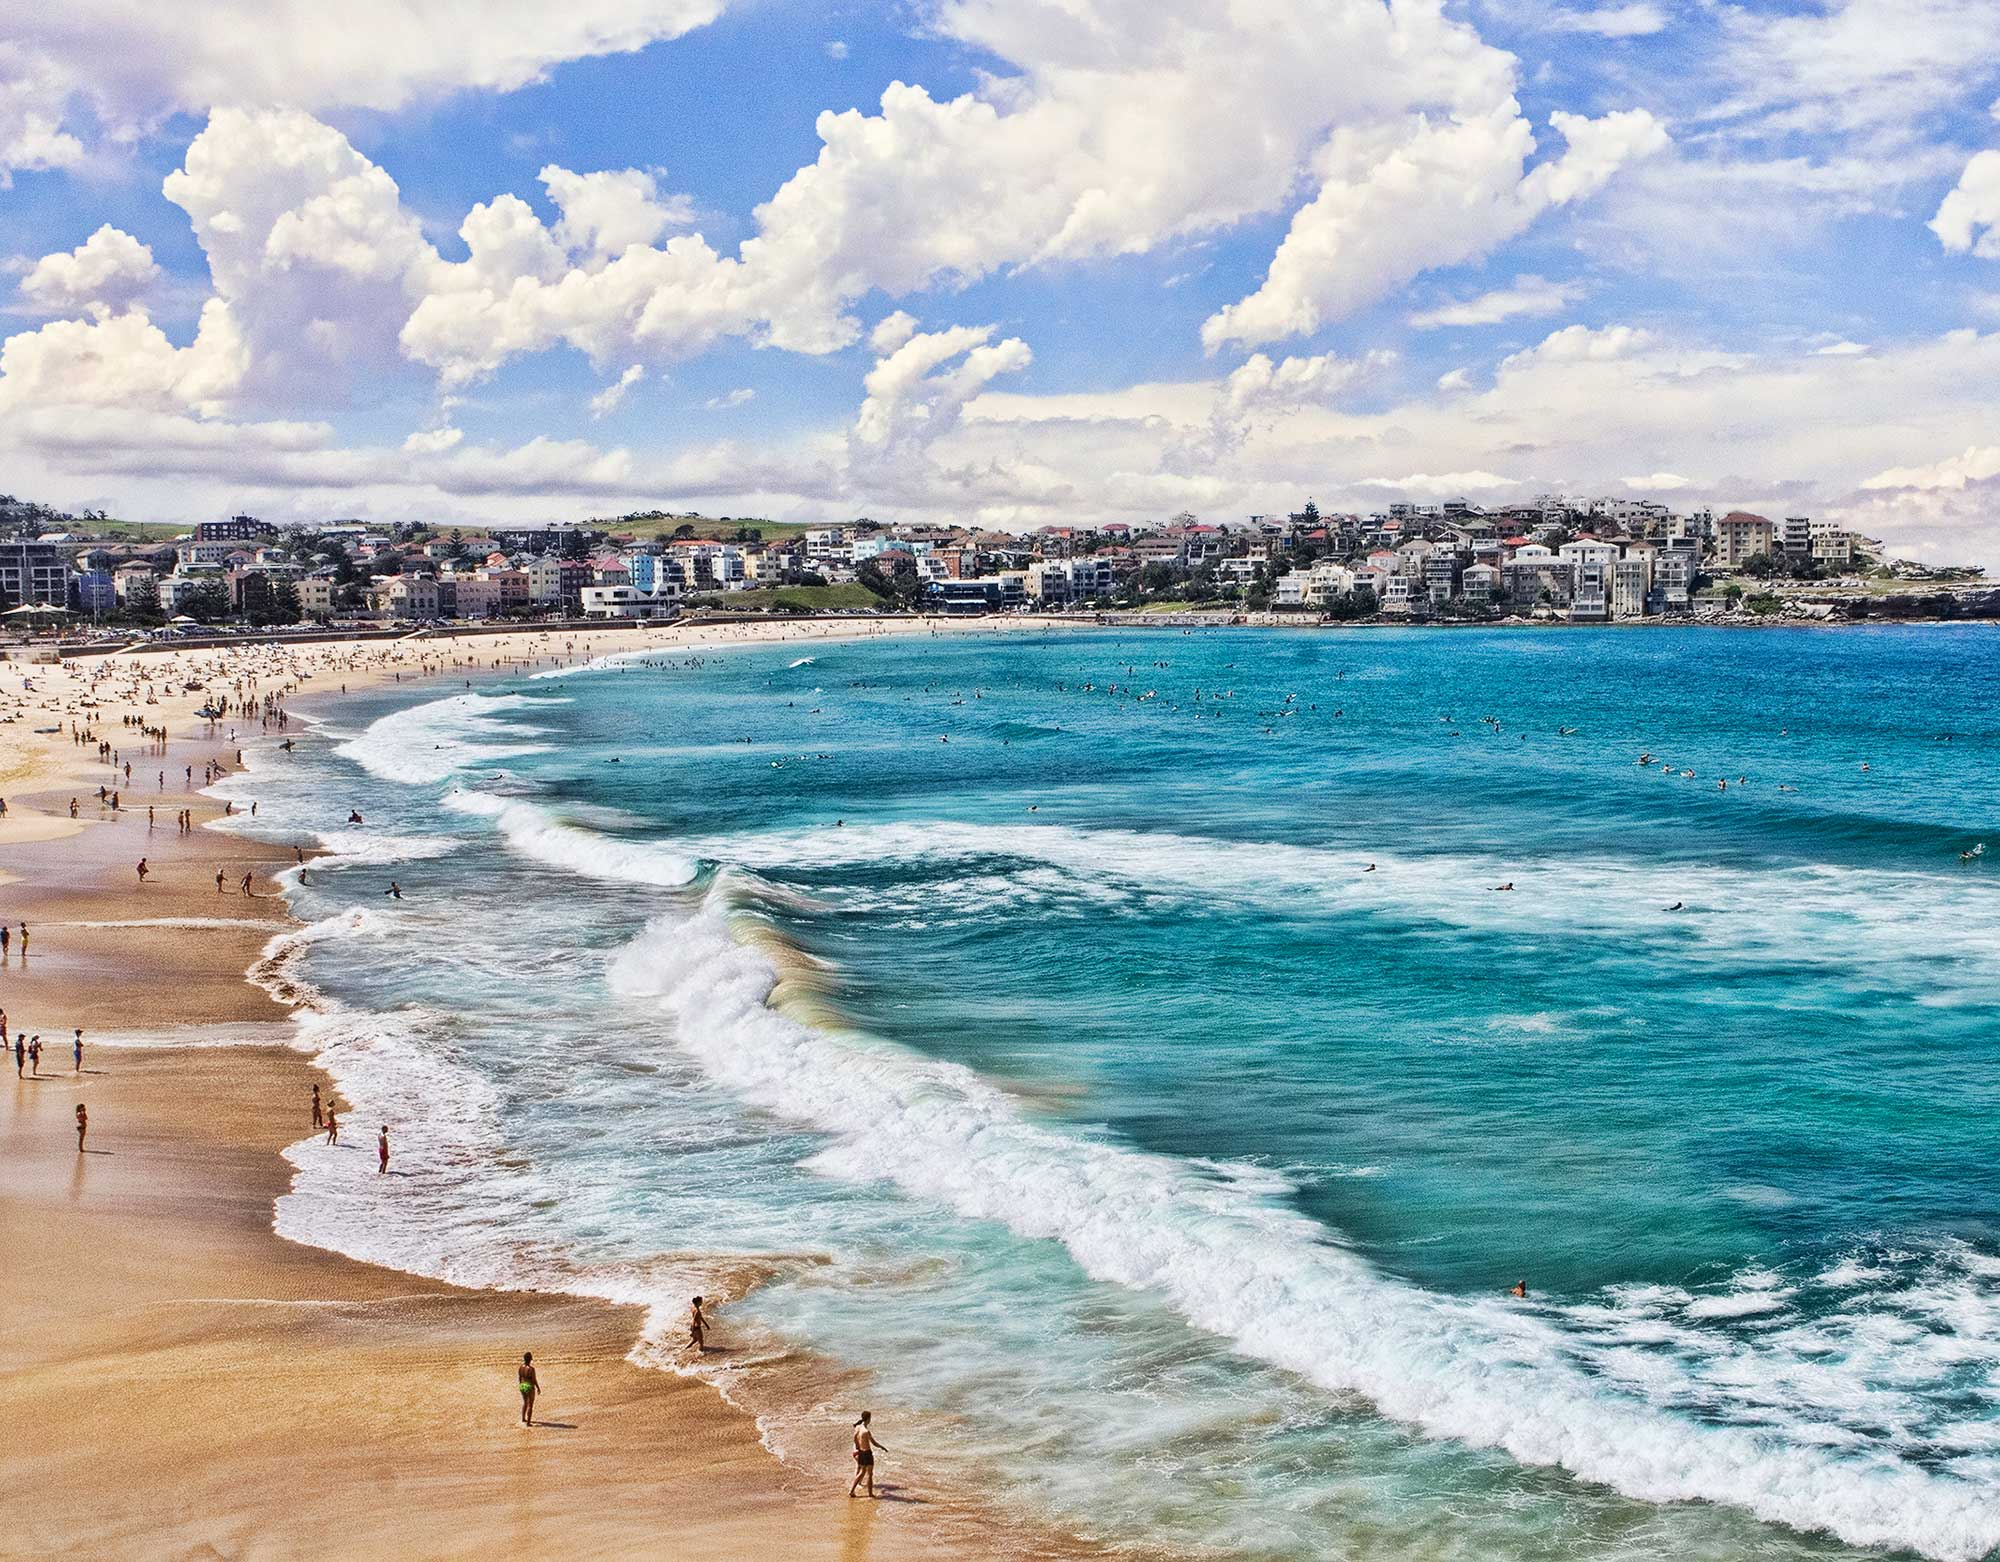 Bondi Beach in Sydney